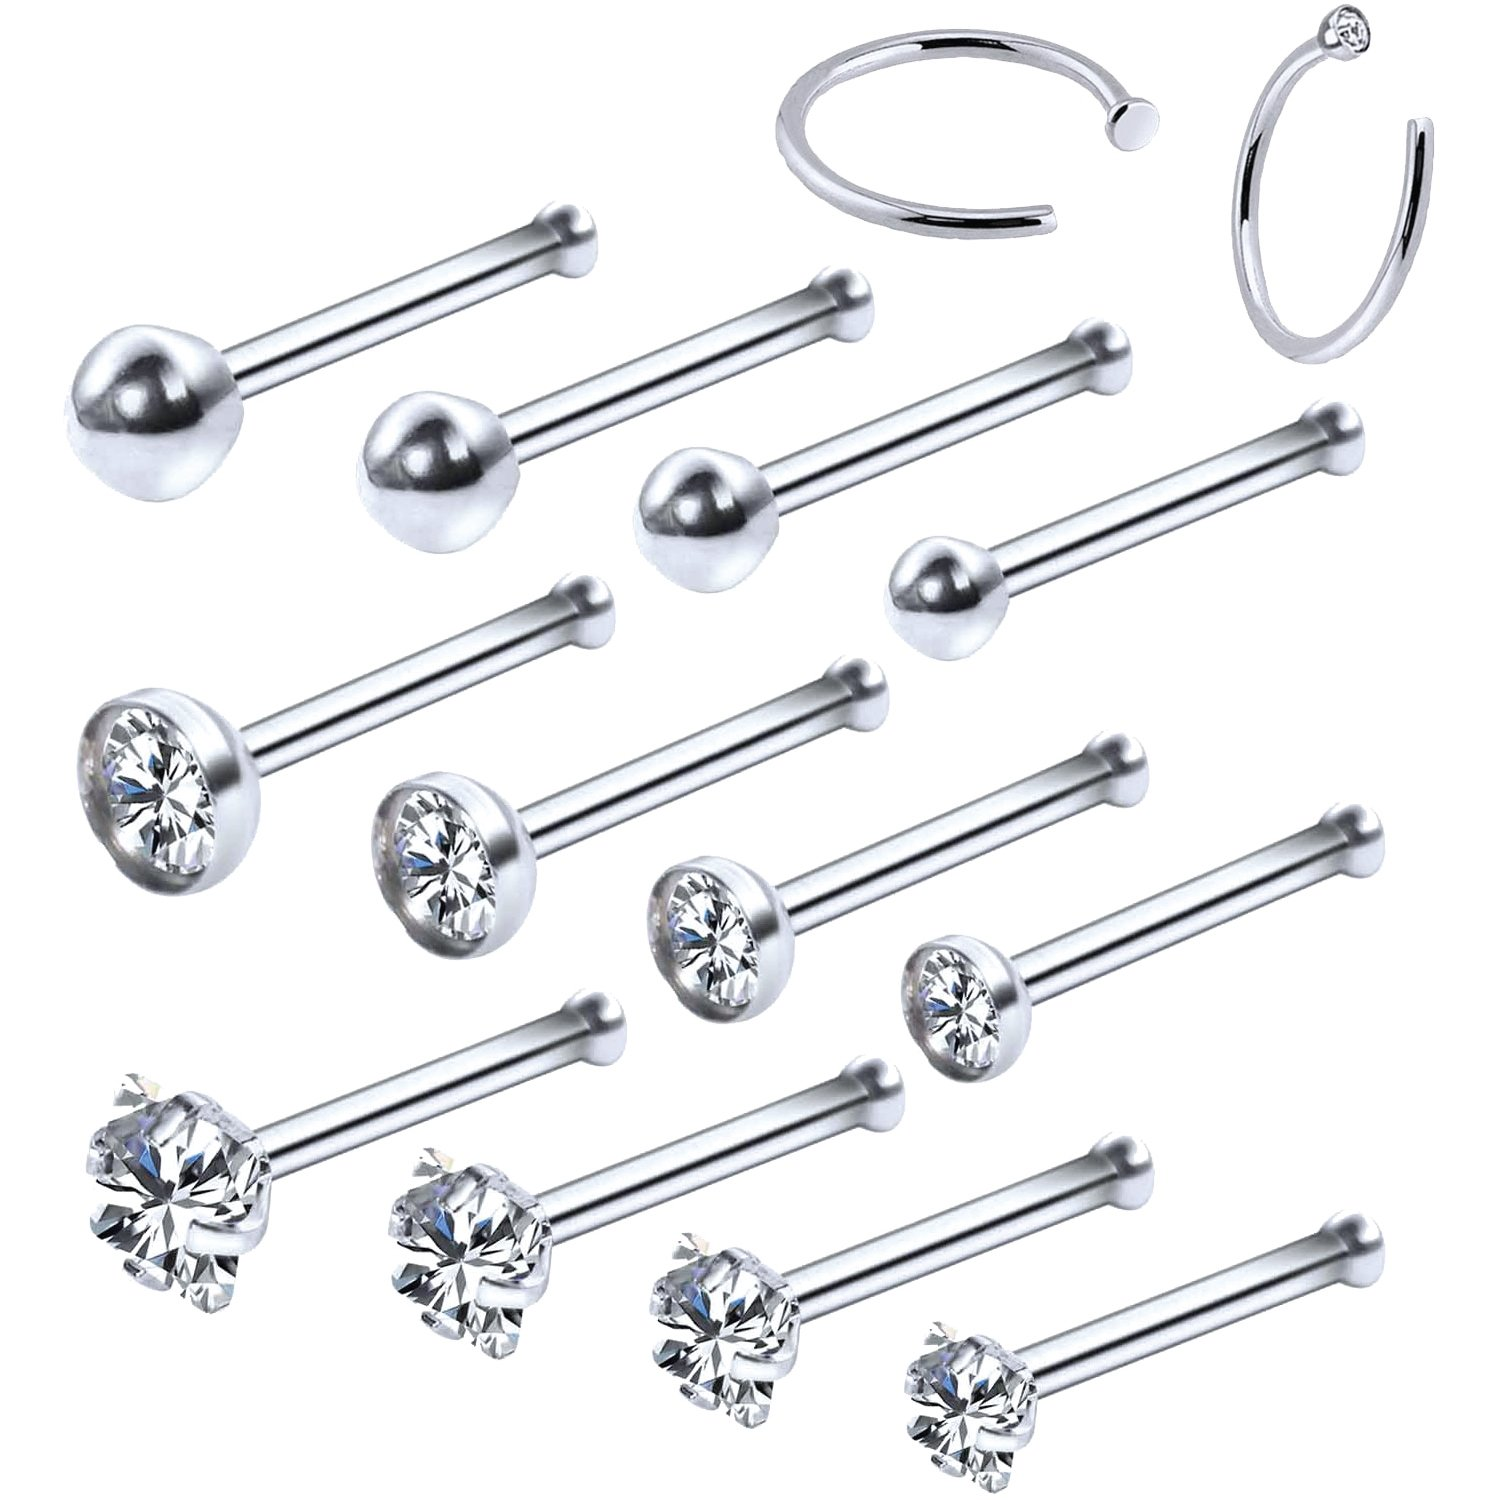 BodyJ4You 14PC Nose Hoop Rings 20G Stainless Steel Silvertone Nose Pin Bone Studs Piercing Jewelry (0.8mm)